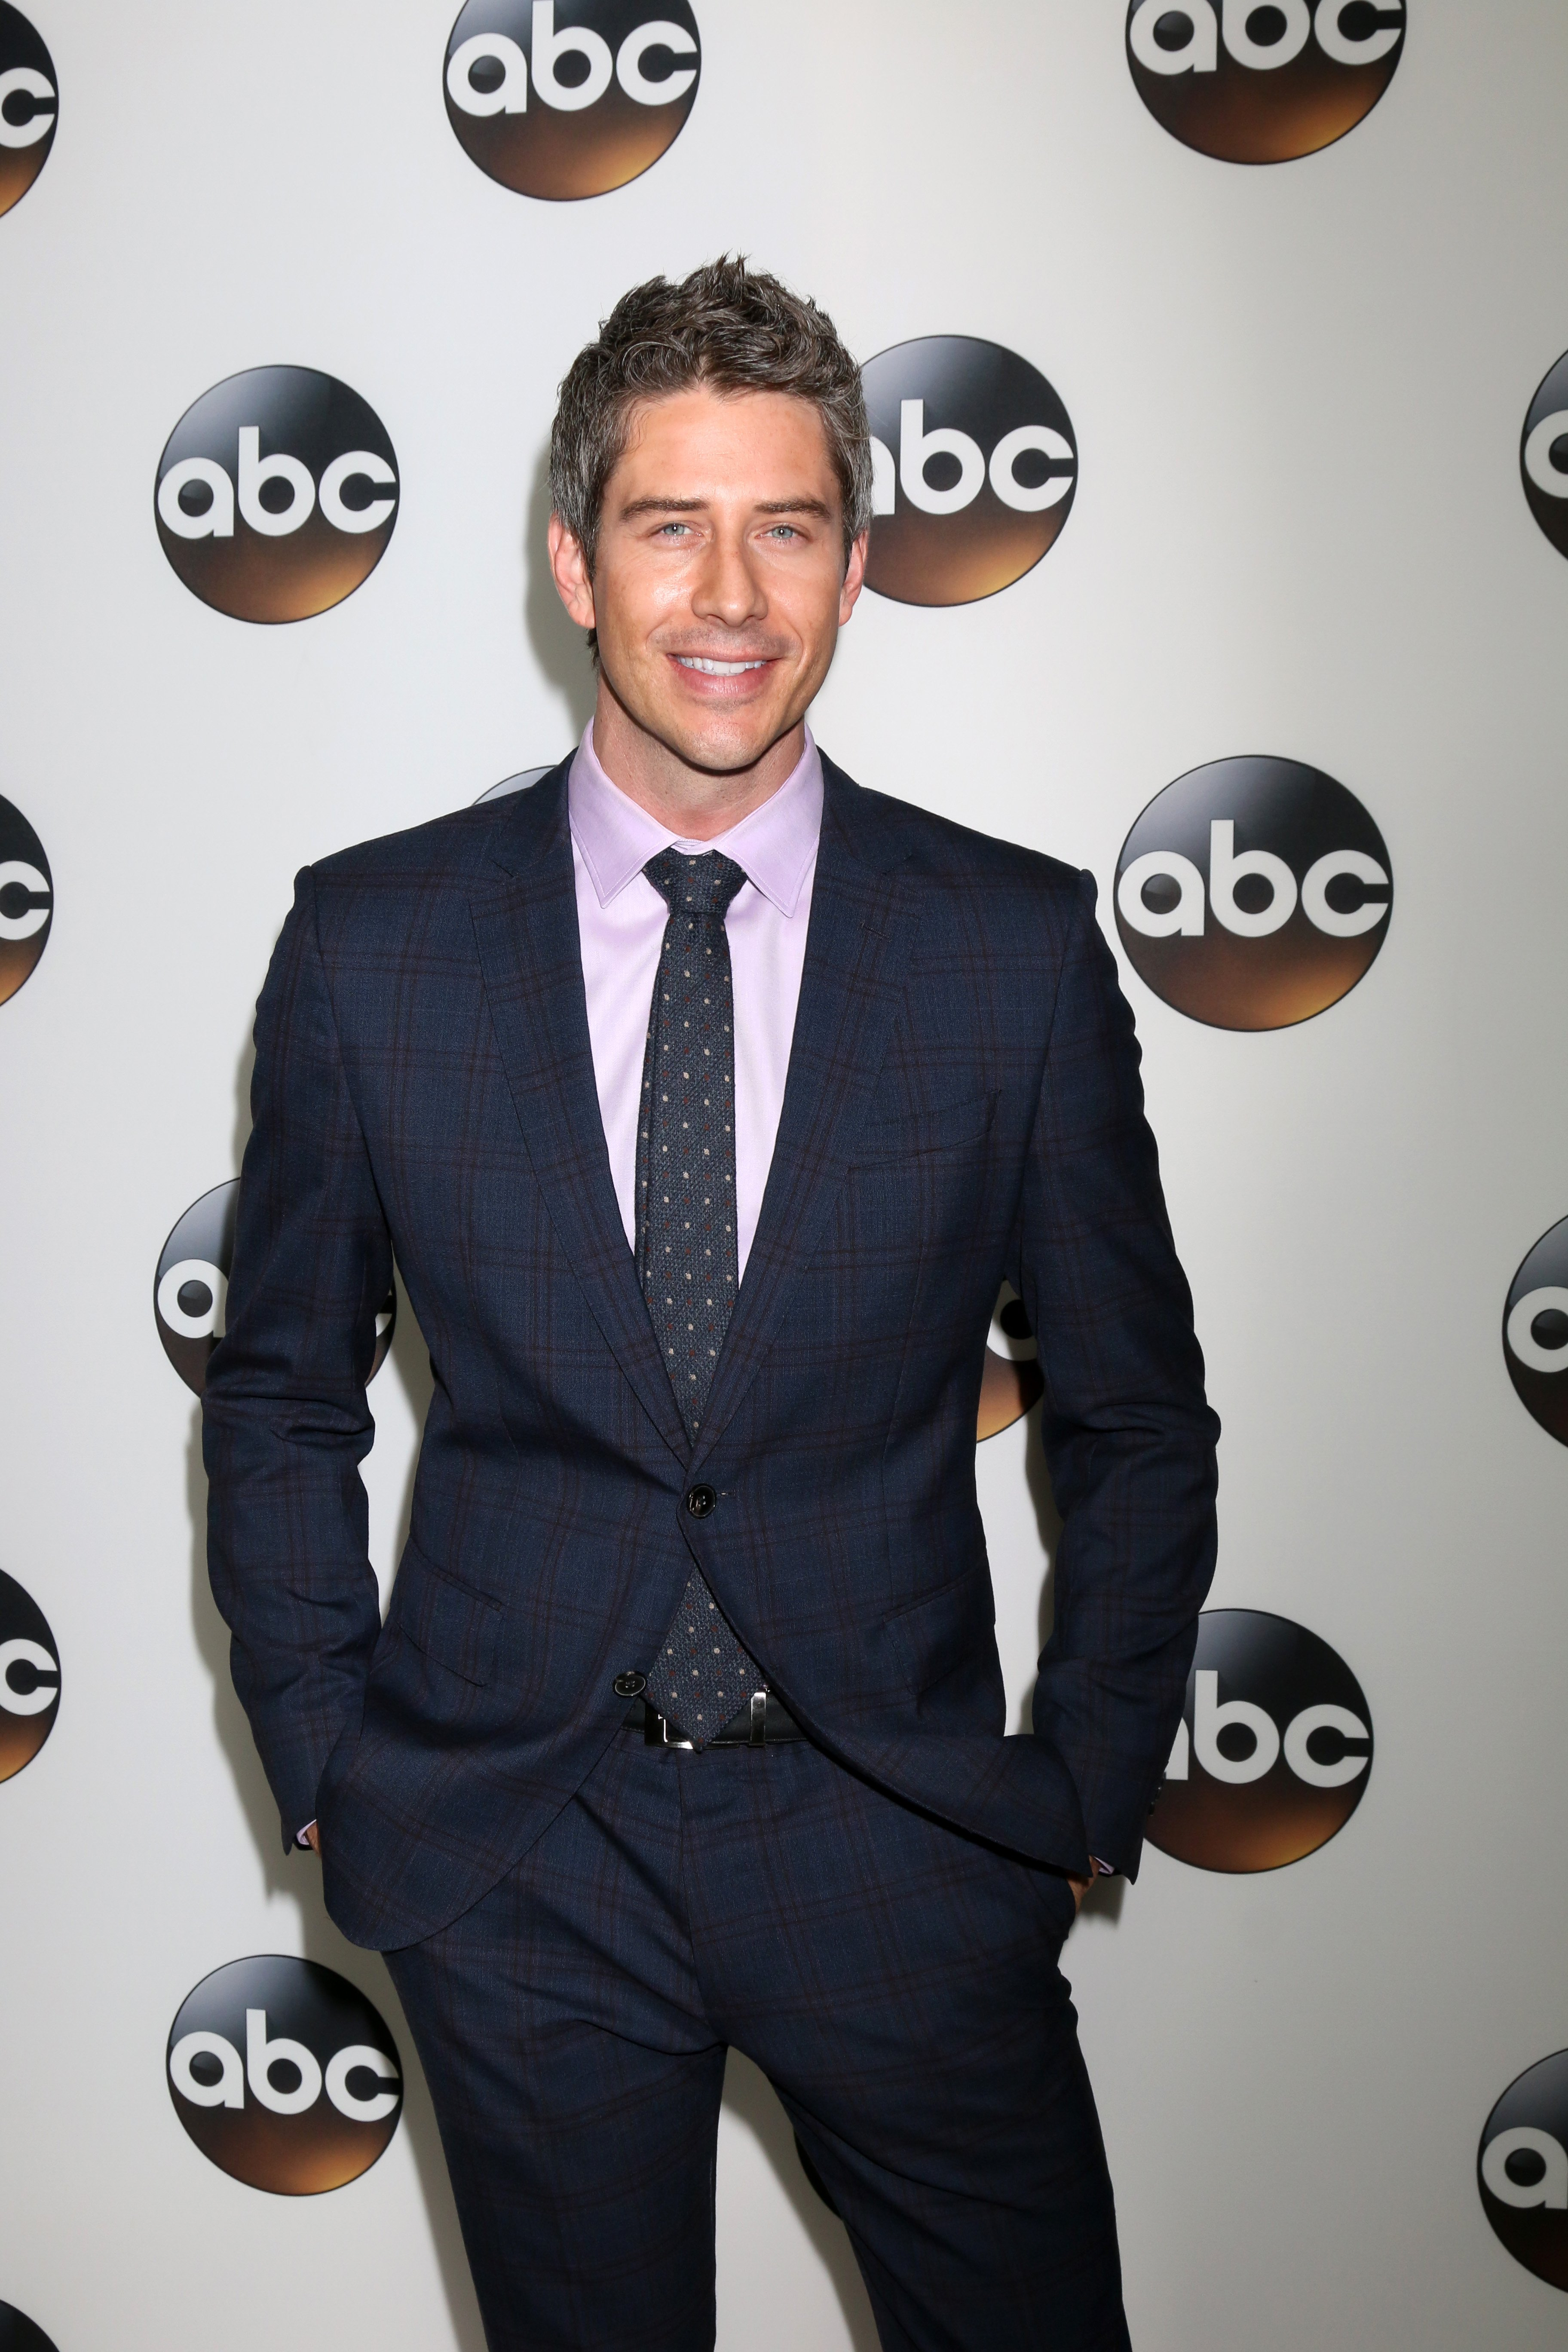 Arie Luyendyk Jr at the ABC TCA Winter 2018 Party at Langham Huntington Hotel on January 8, 2018 in Pasadena, CA | Source: Shutterstock